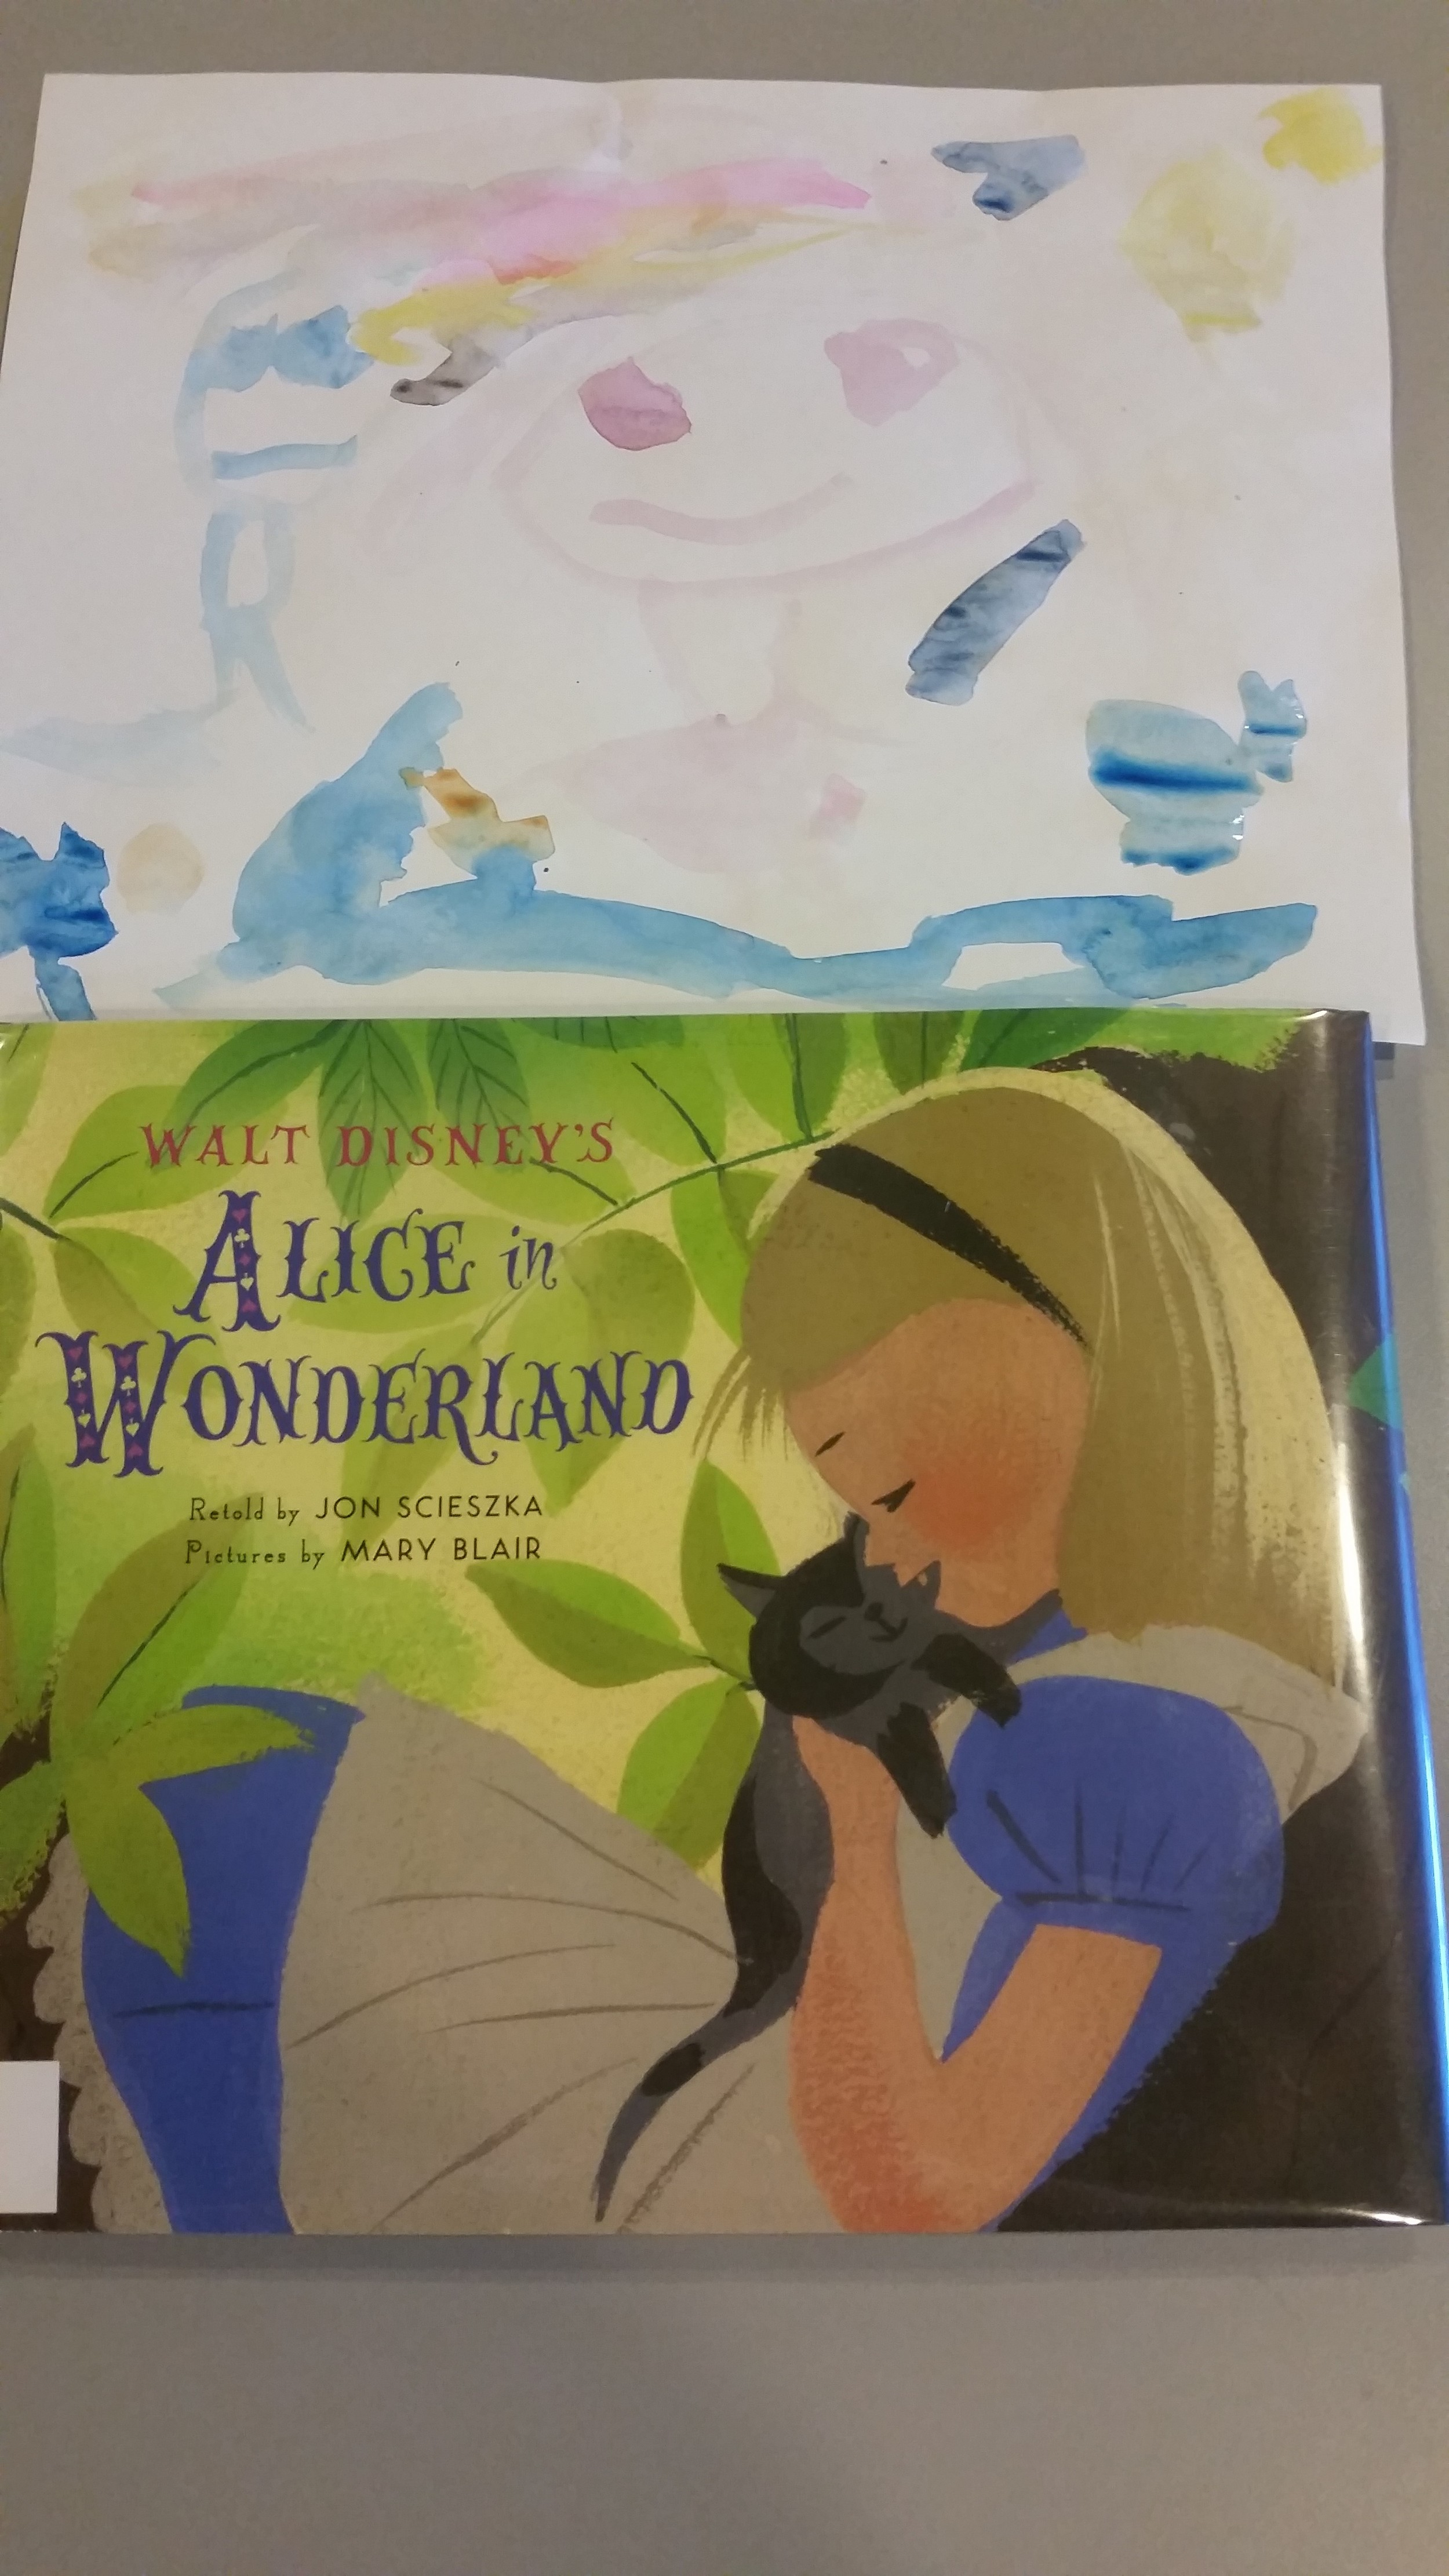 Enjoy the Alice in Wonderland cover re-interpreted in watercolors by one of our 4 year old campers.